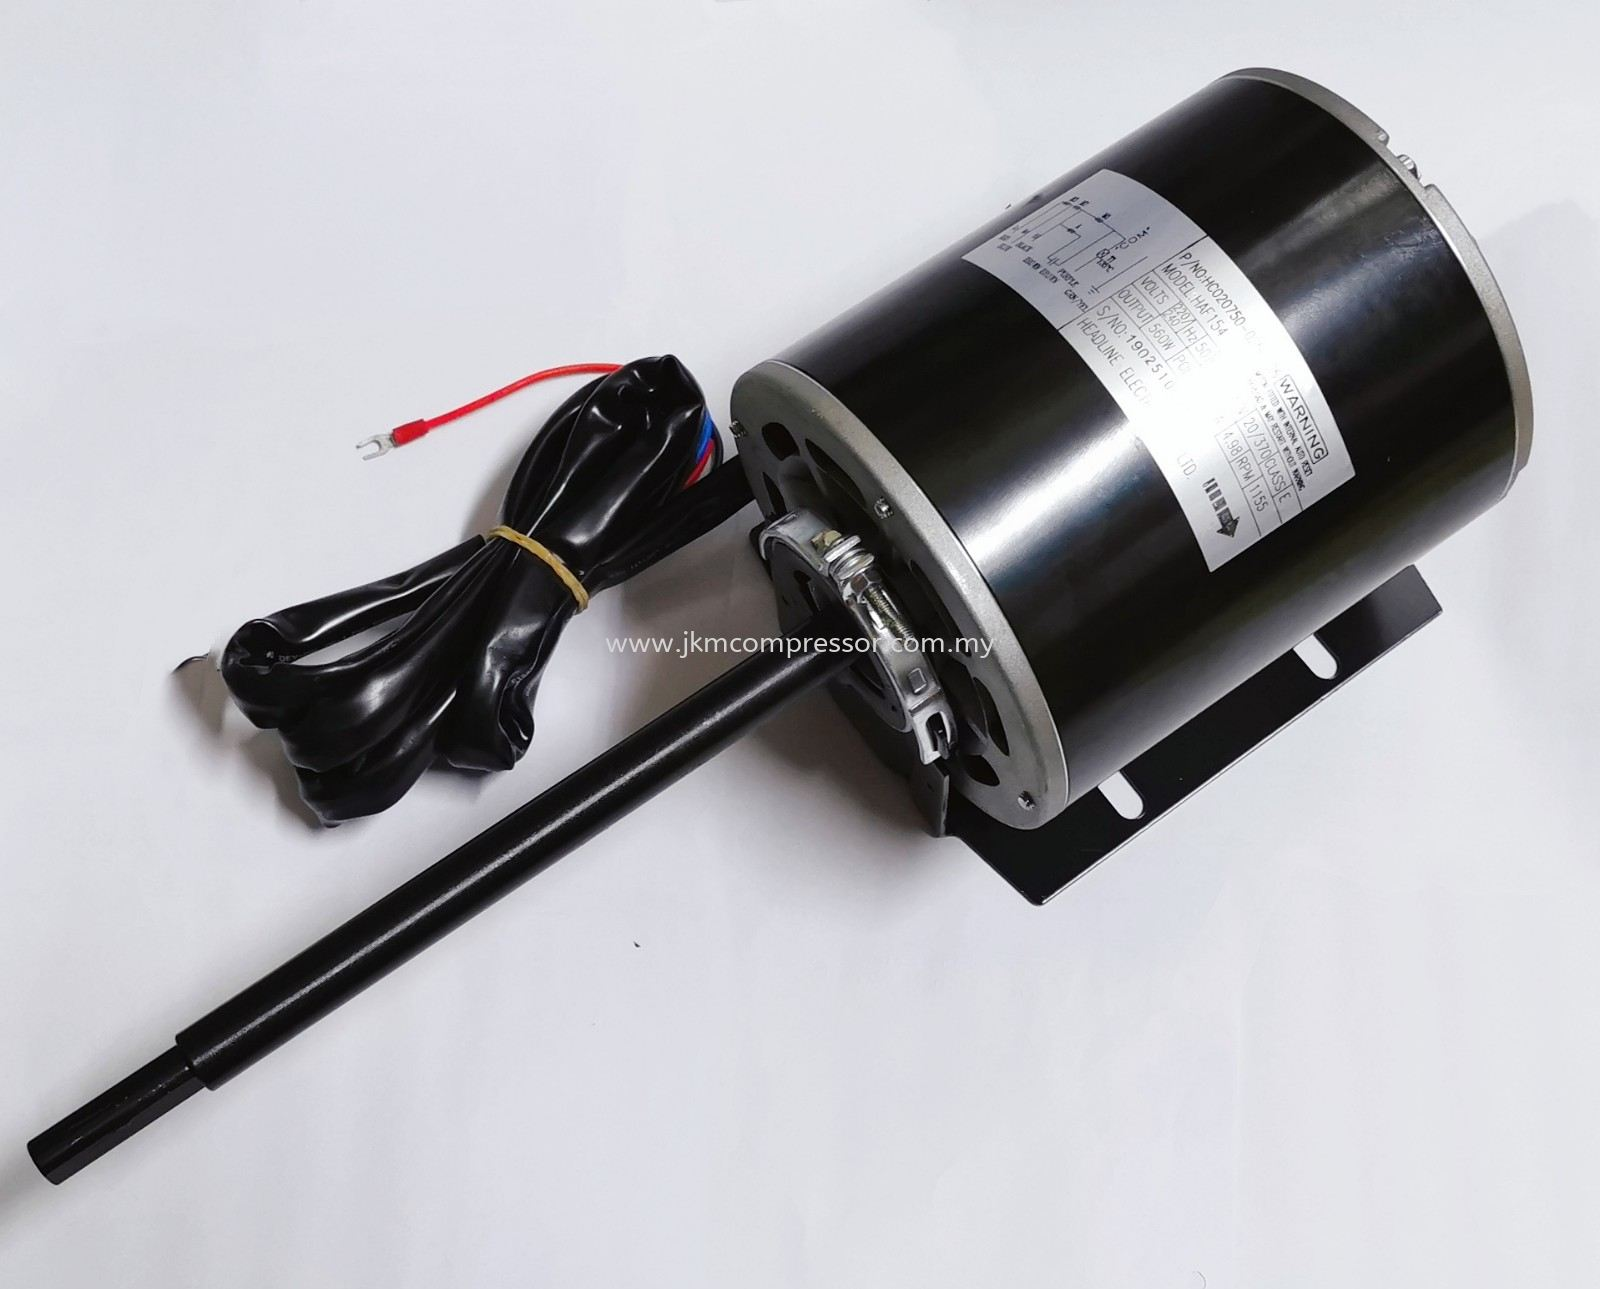 HC020750-0250-25 - CARRIER HAF154 HEADLINE FAN MOTOR ; 220-240V 4P 560W 1155RPM